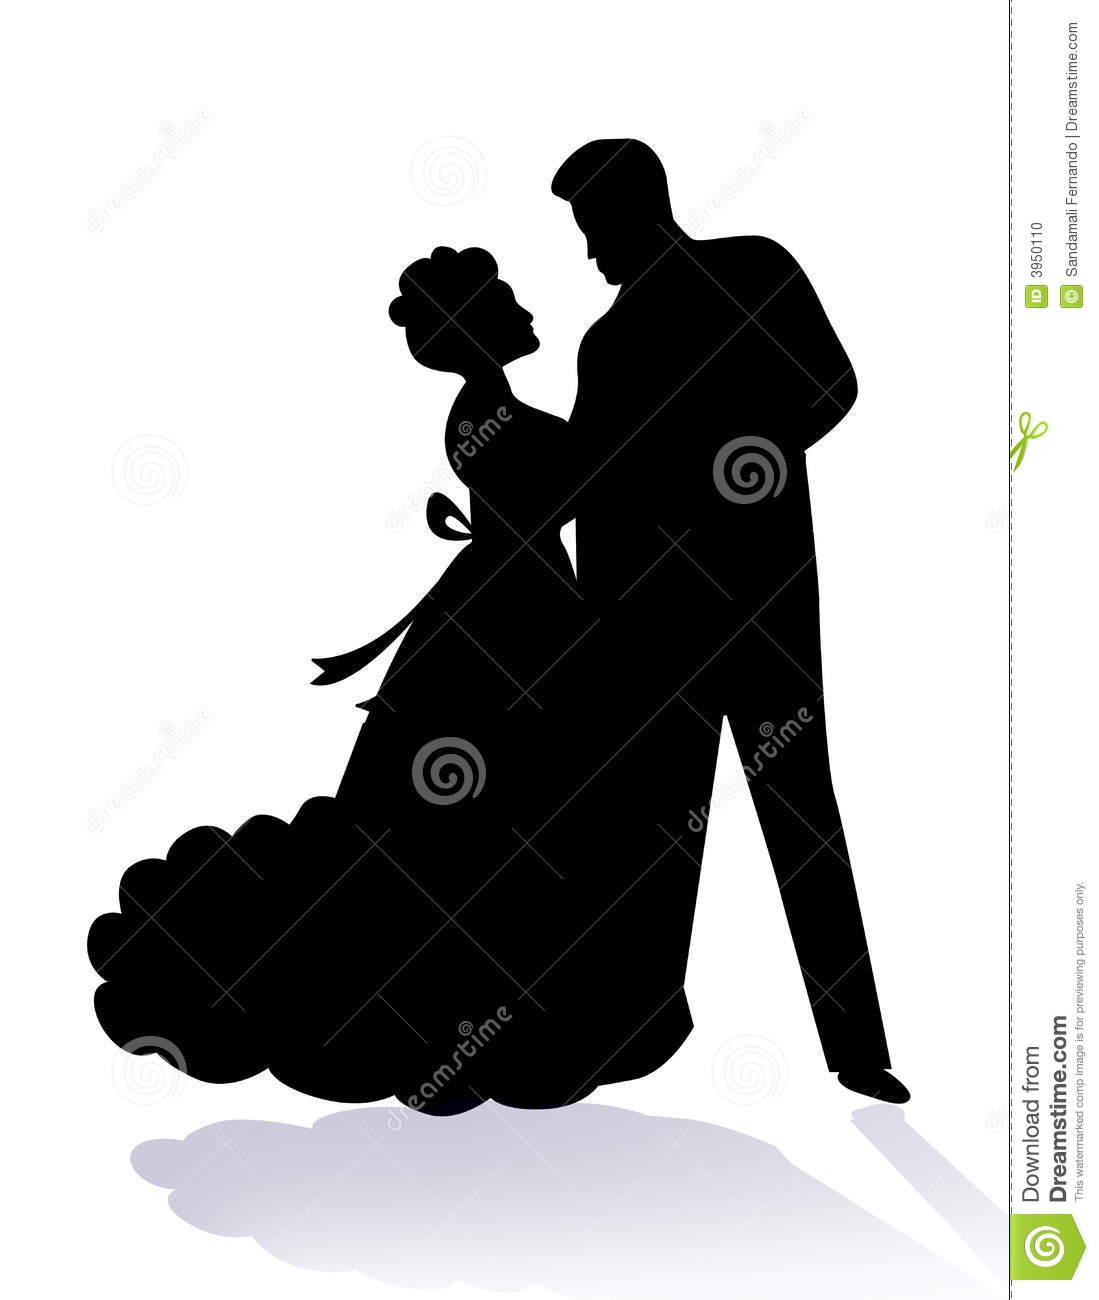 danse de couples ensemble amoureux photo stock image 3950110. Black Bedroom Furniture Sets. Home Design Ideas